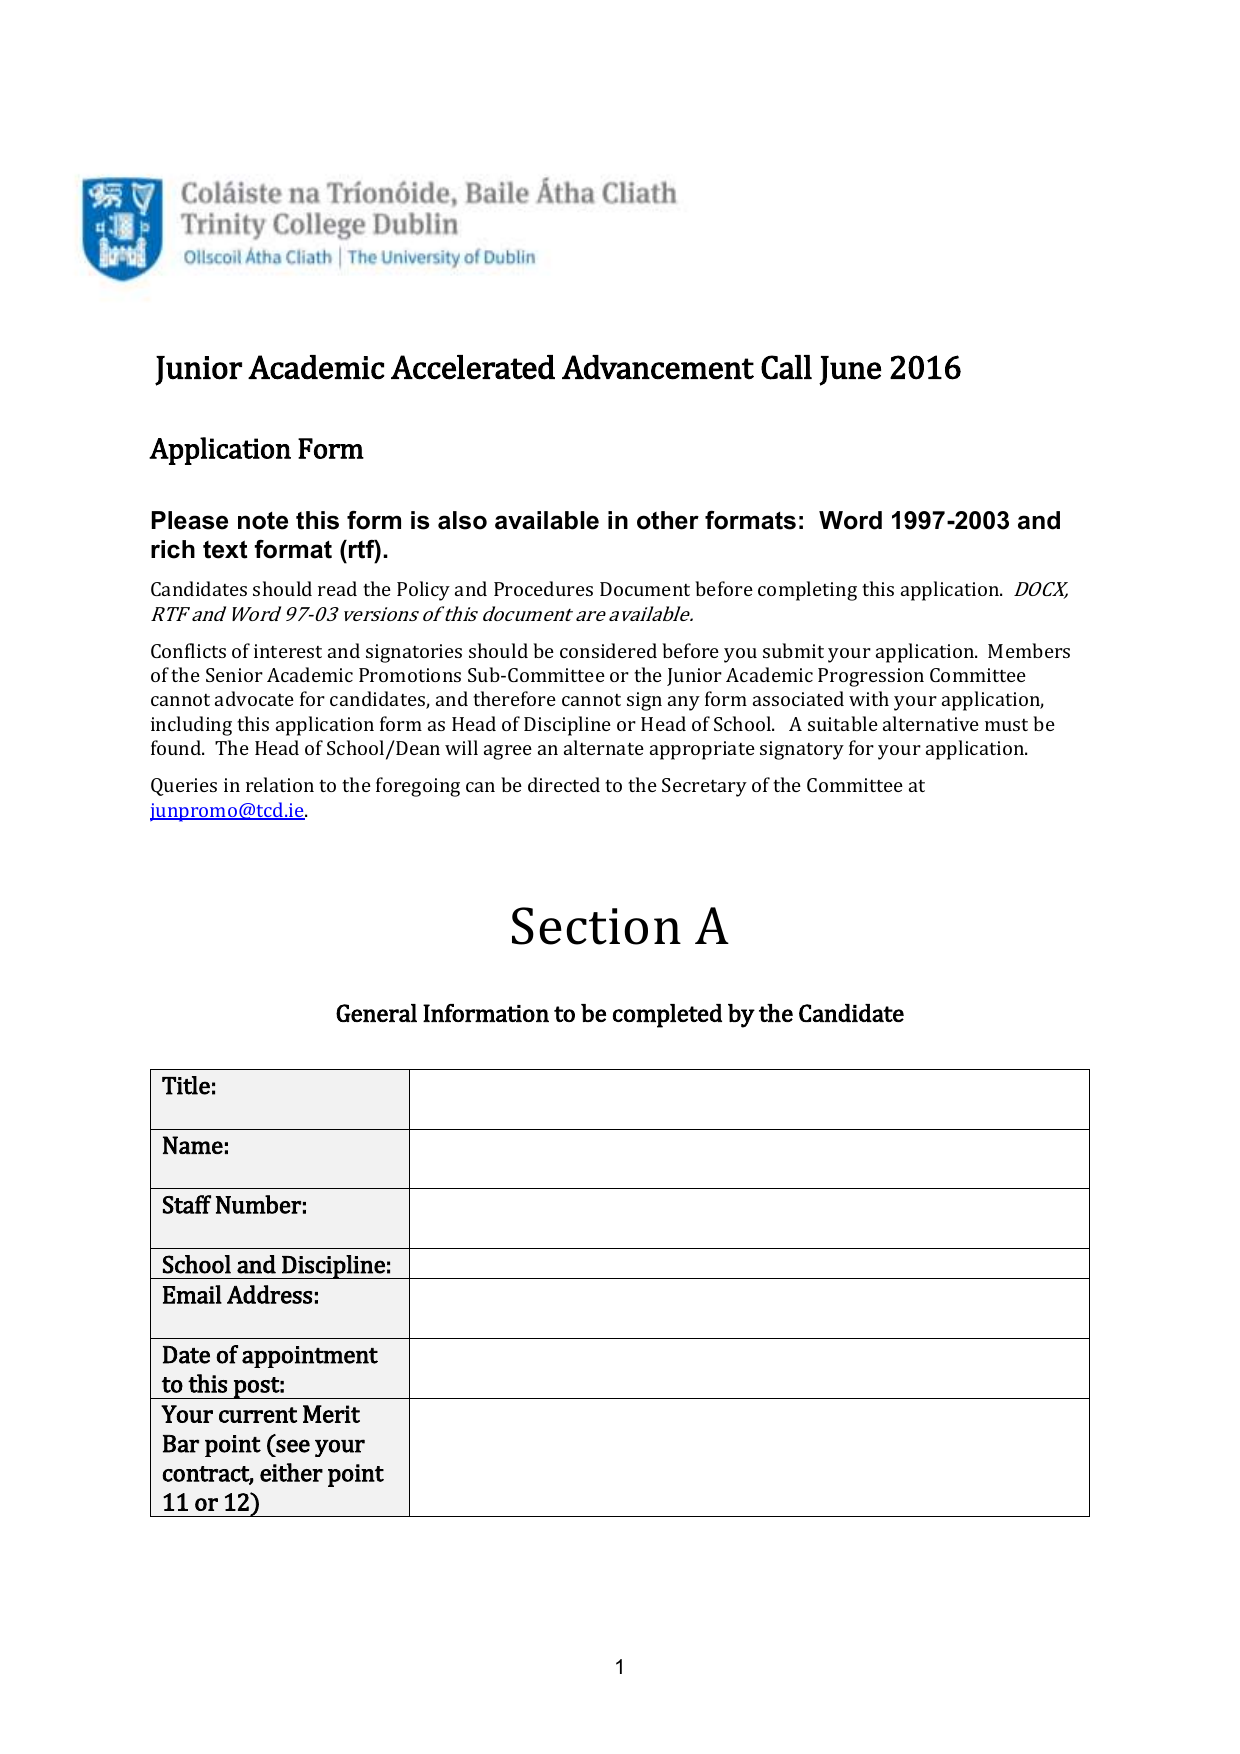 Application Form For Advancement Of Assistant Professors Beyond The